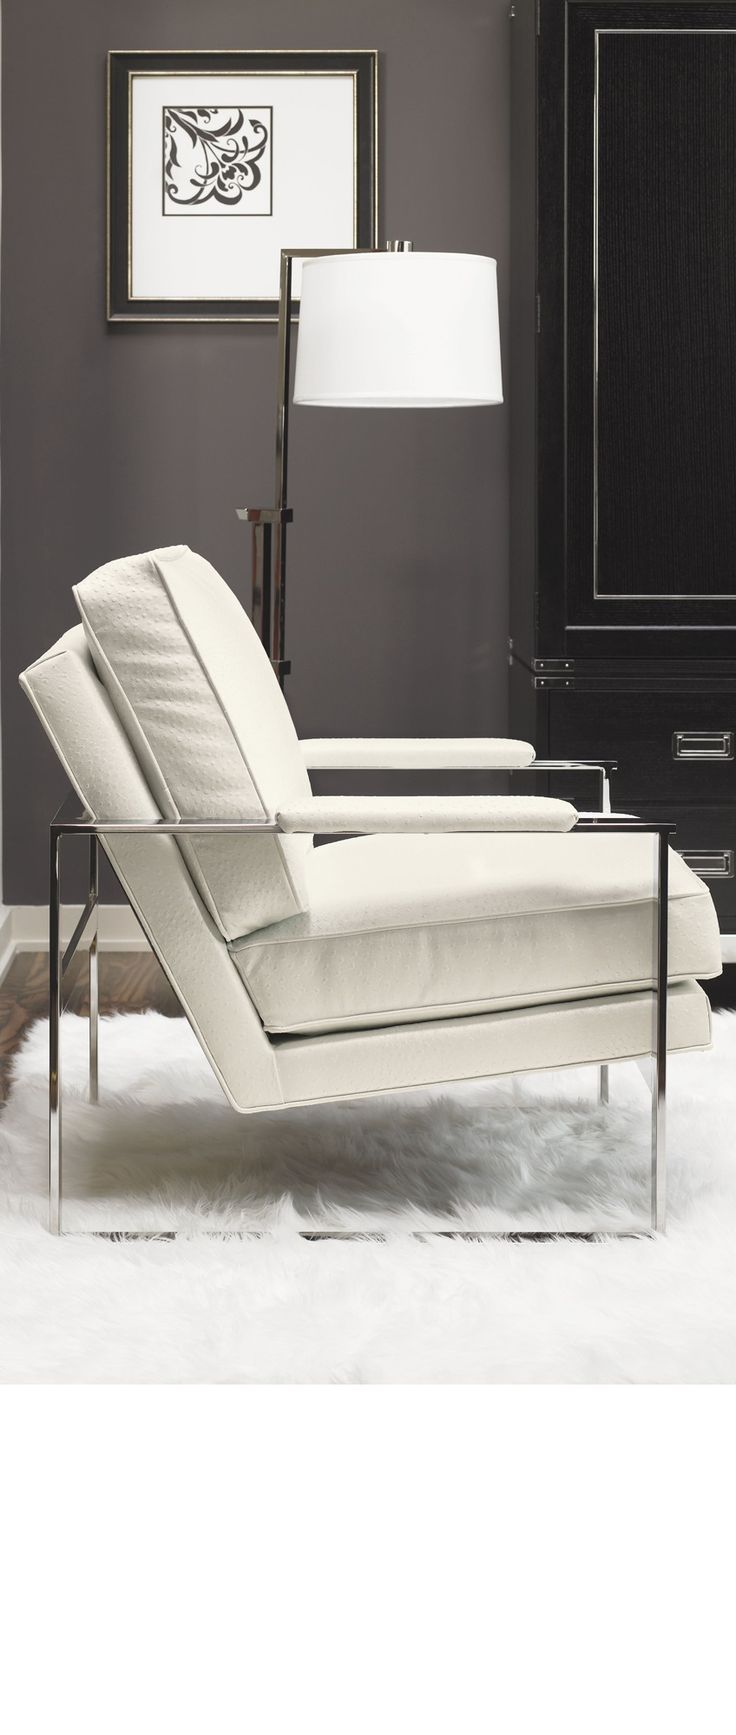 Lounge chairs for bedroom – Bedroom Lounge Chairs